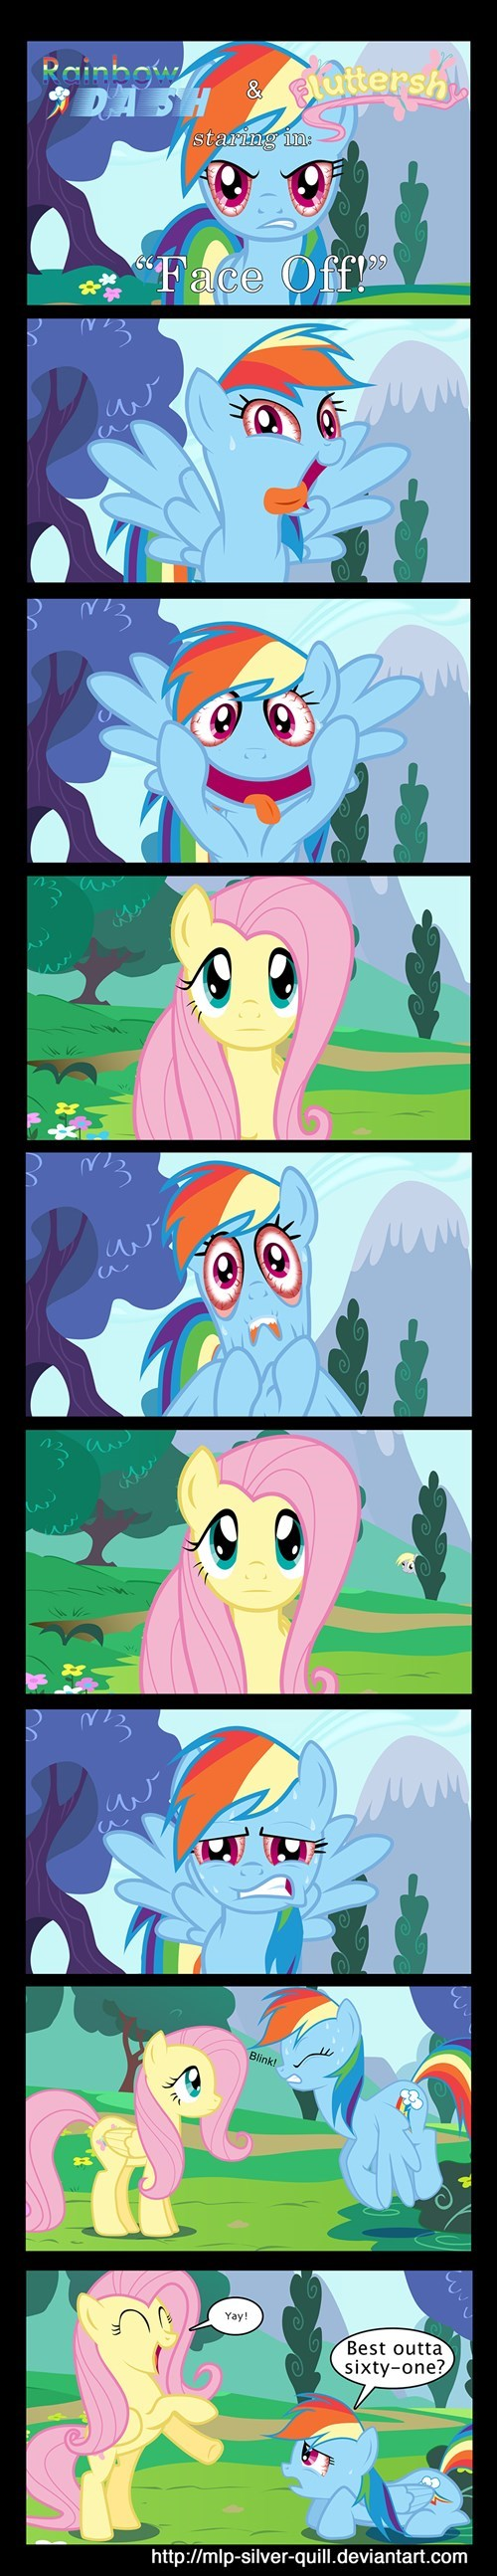 my-little-pony-rainbow-dash-fluttershy-staring-contest